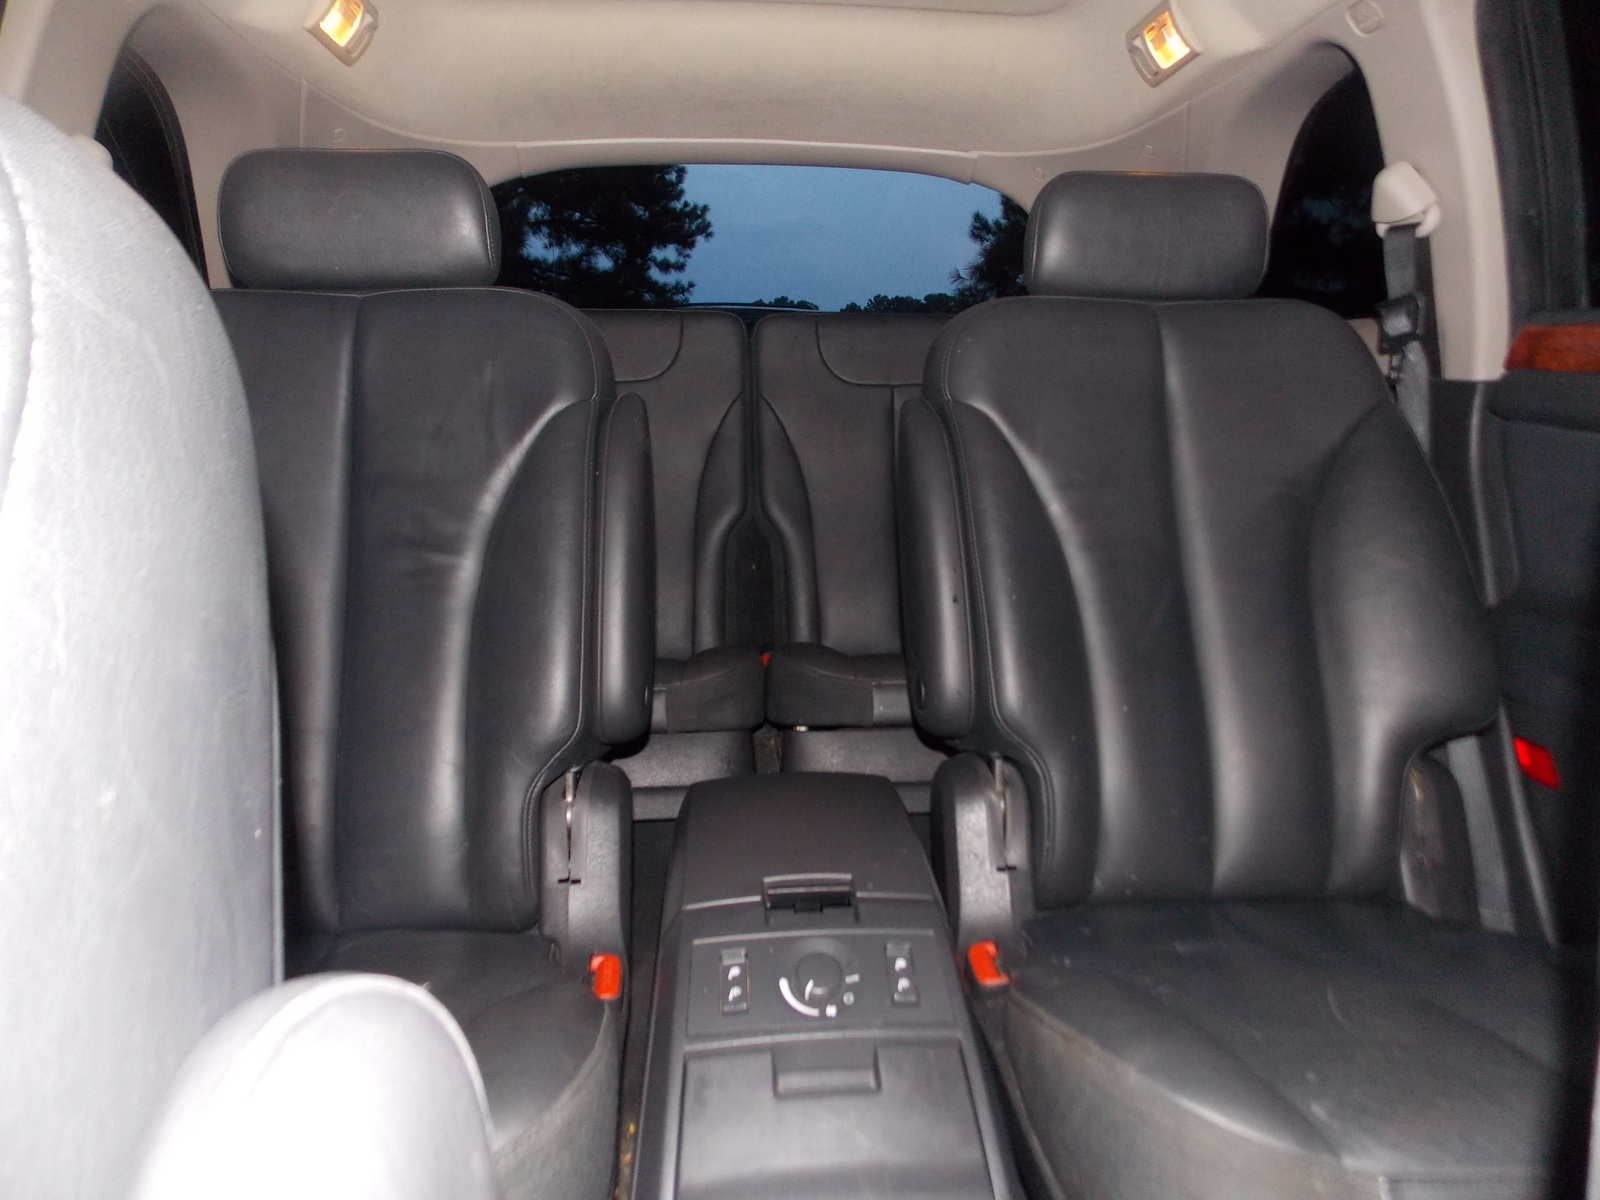 2004 Chrysler Pacifica Interior Pictures Cargurus